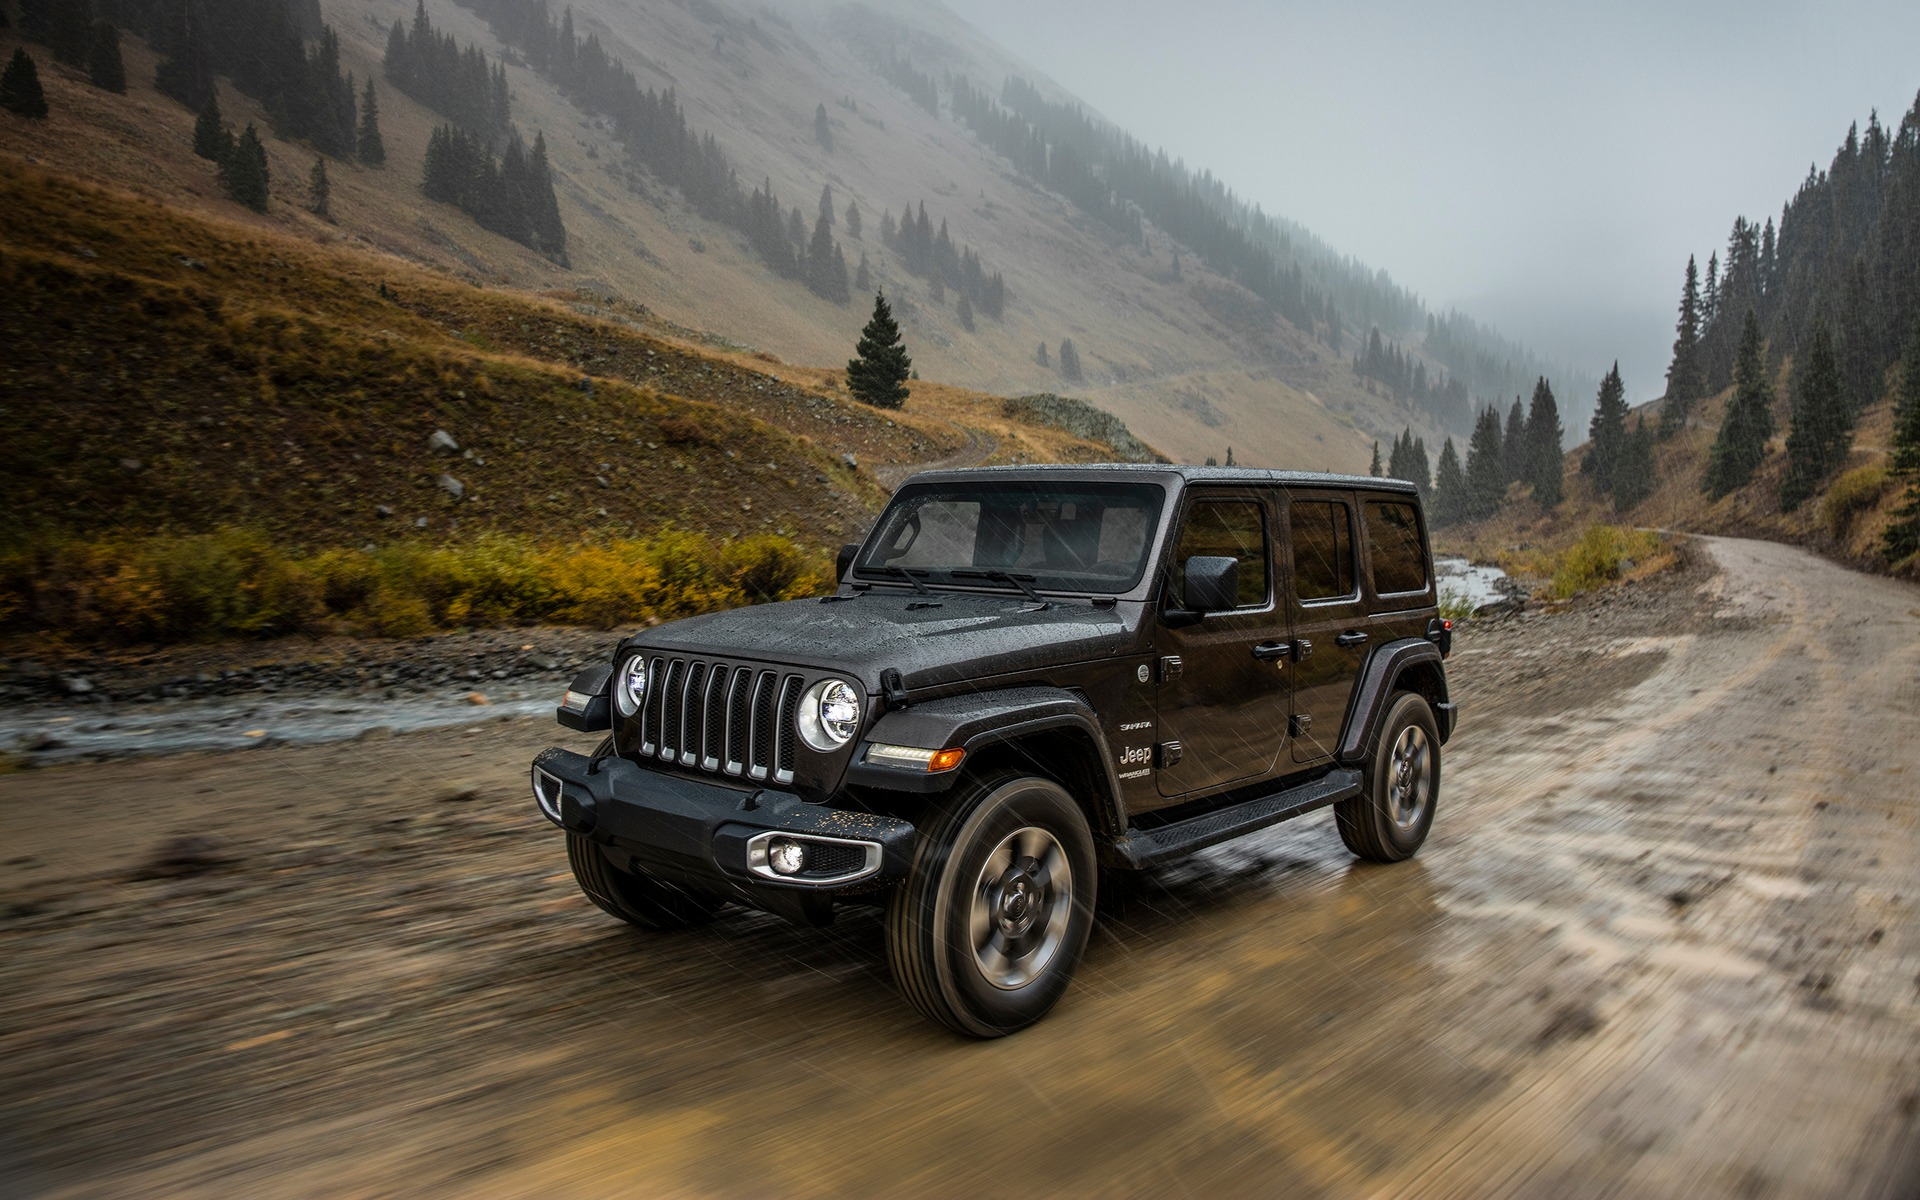 Jeep Wrangler Dealers >> 2018 Jeep Wrangler photos - 1/21 - The Car Guide